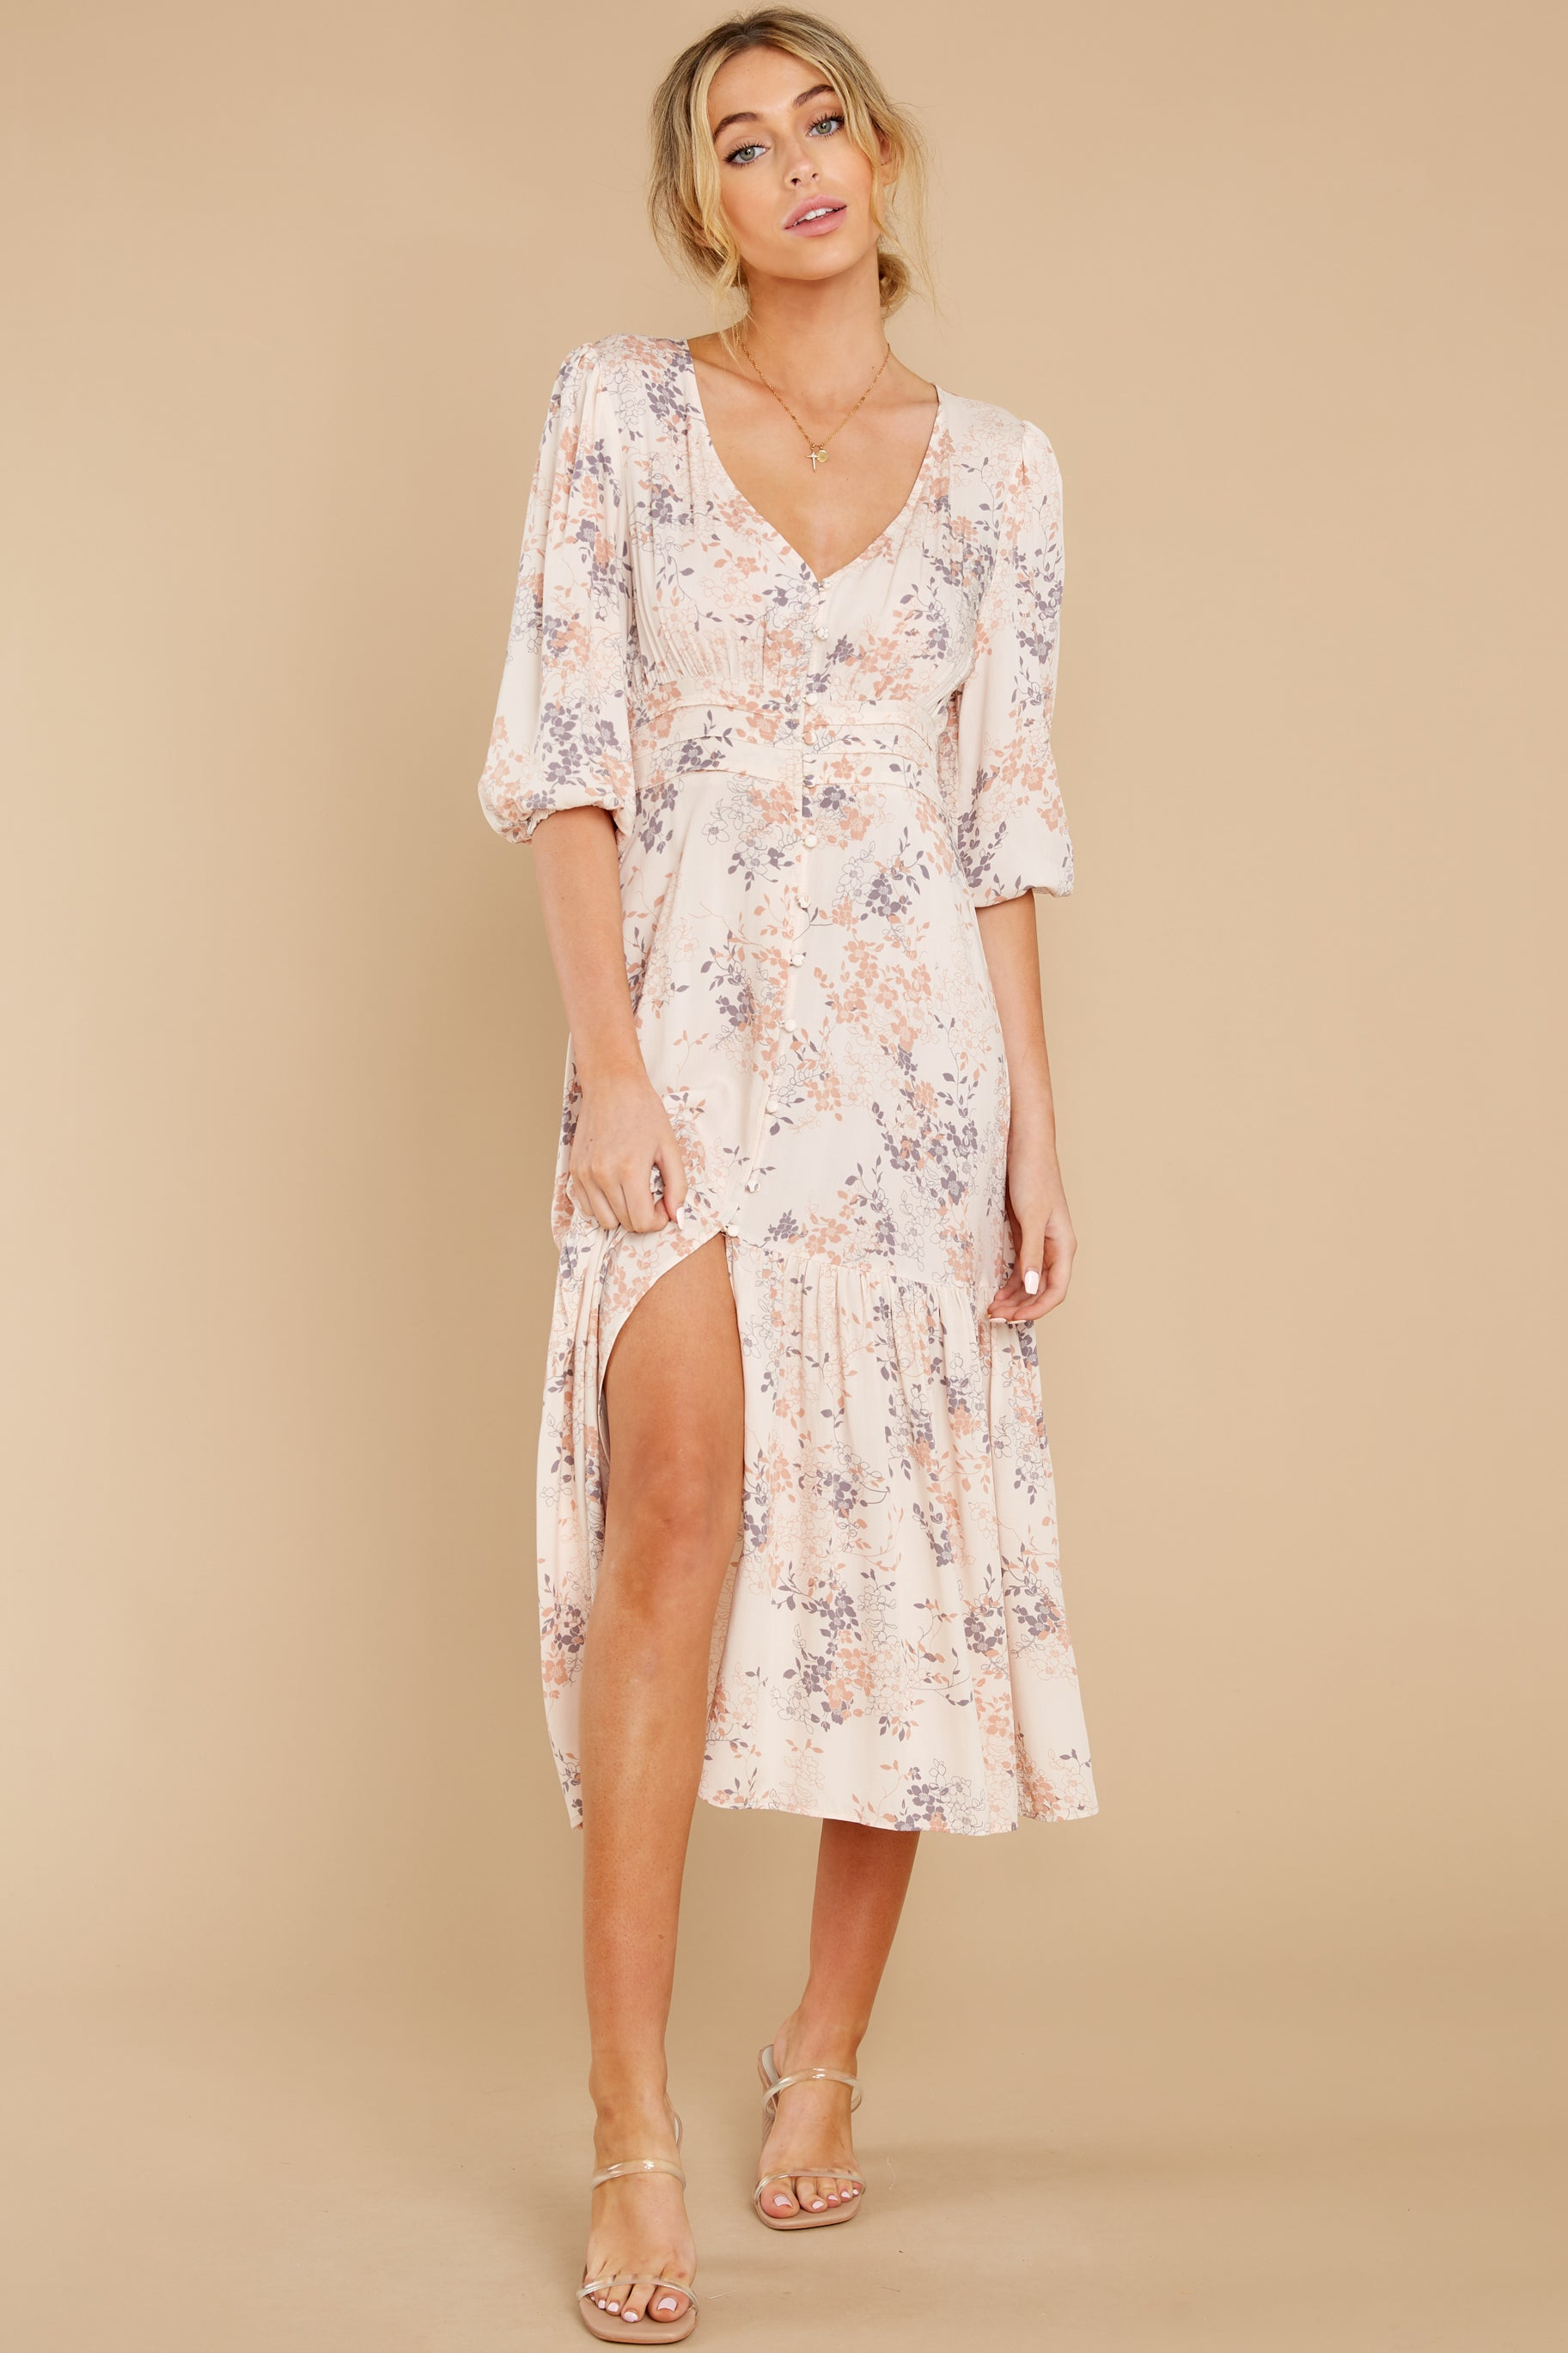 2 Love You More Blush Floral Print Maxi Dress at reddress.com